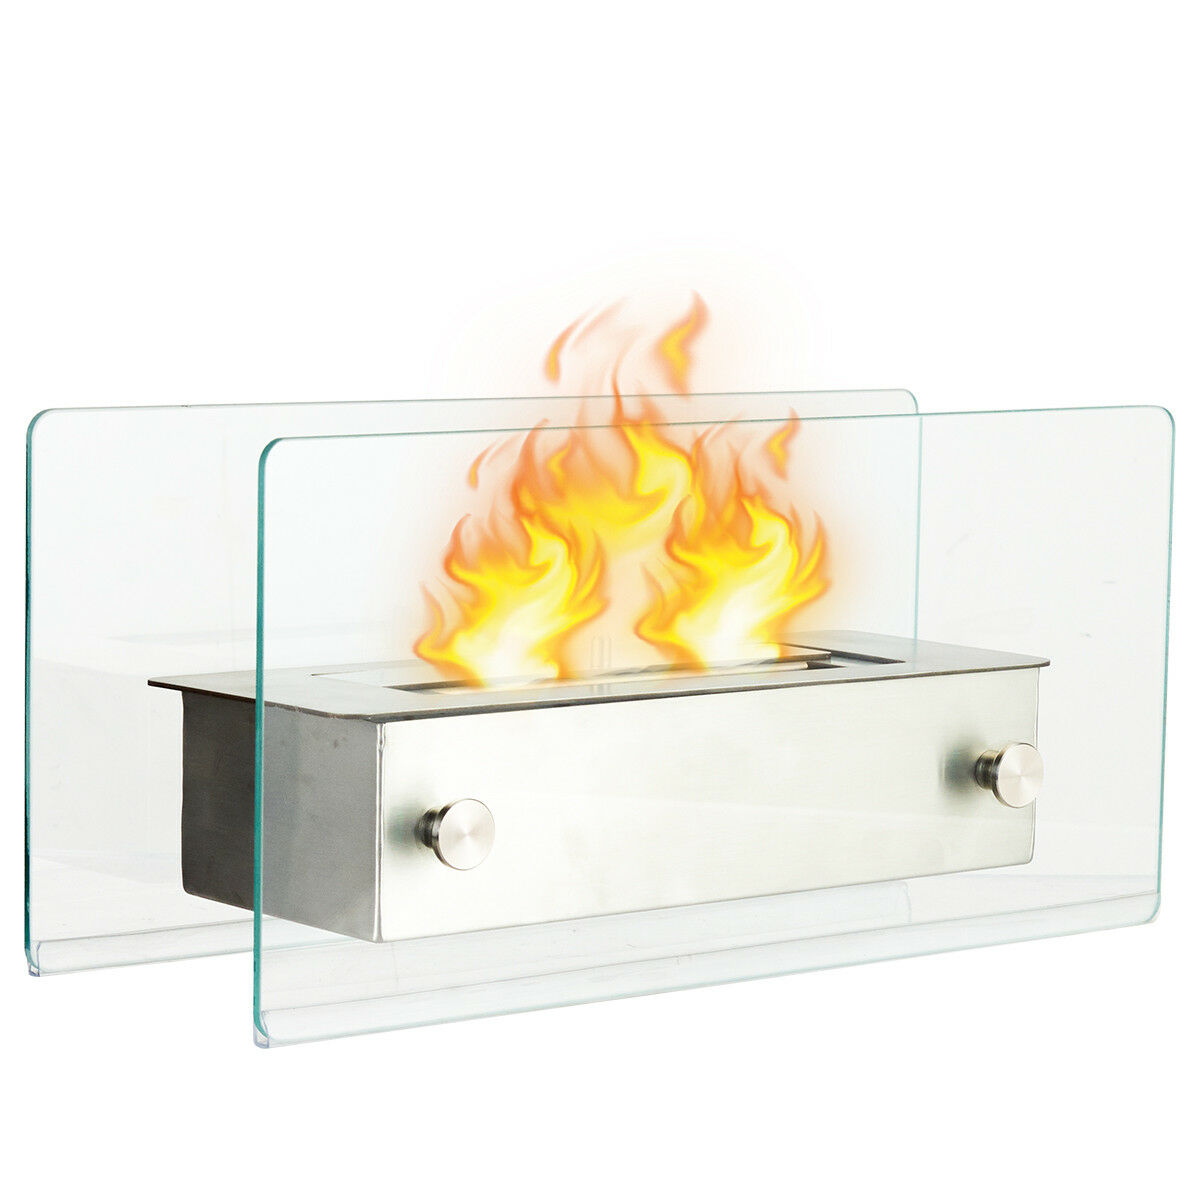 Costway Tabletop Fireplace Portable Stainless Steel Ventless Bio Ethanol